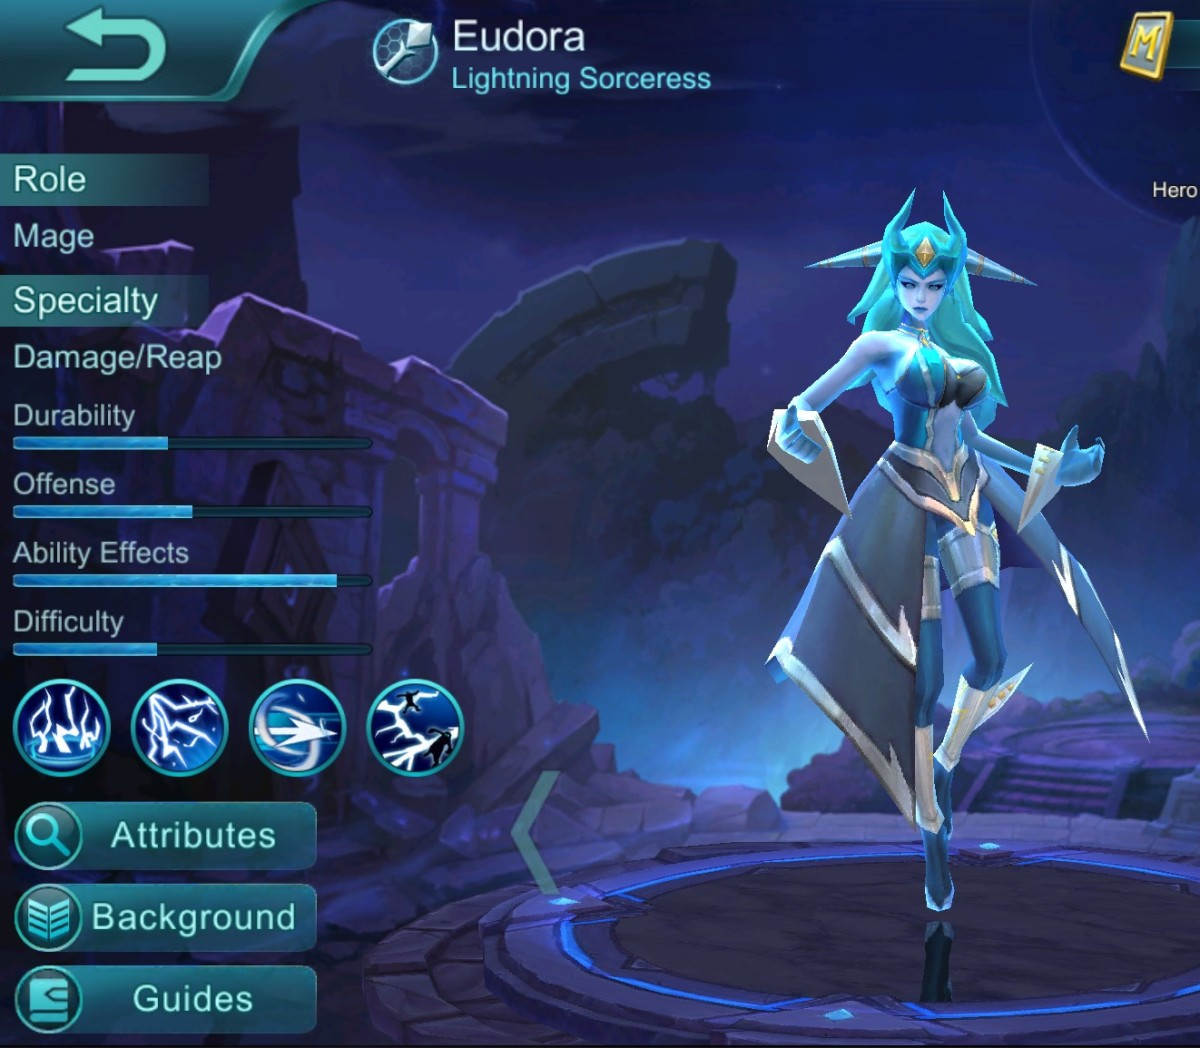 Mobile Legends: Eudora Strategy and Build Guide